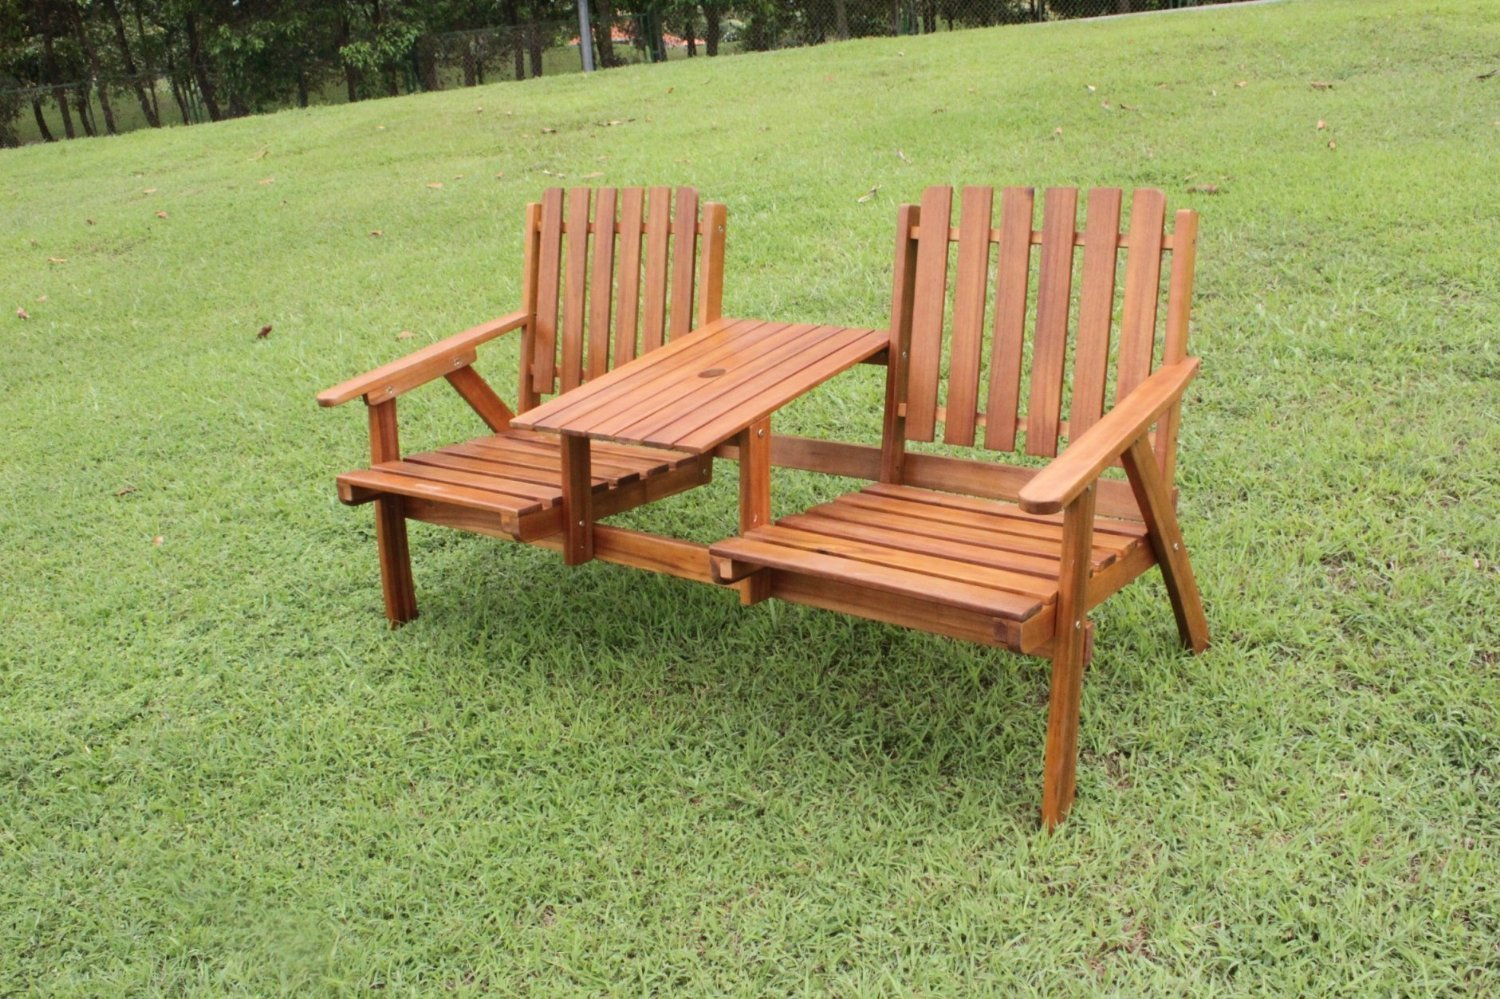 Tete a tete 2 seater love seat simply wood for Hardwood outdoor furniture